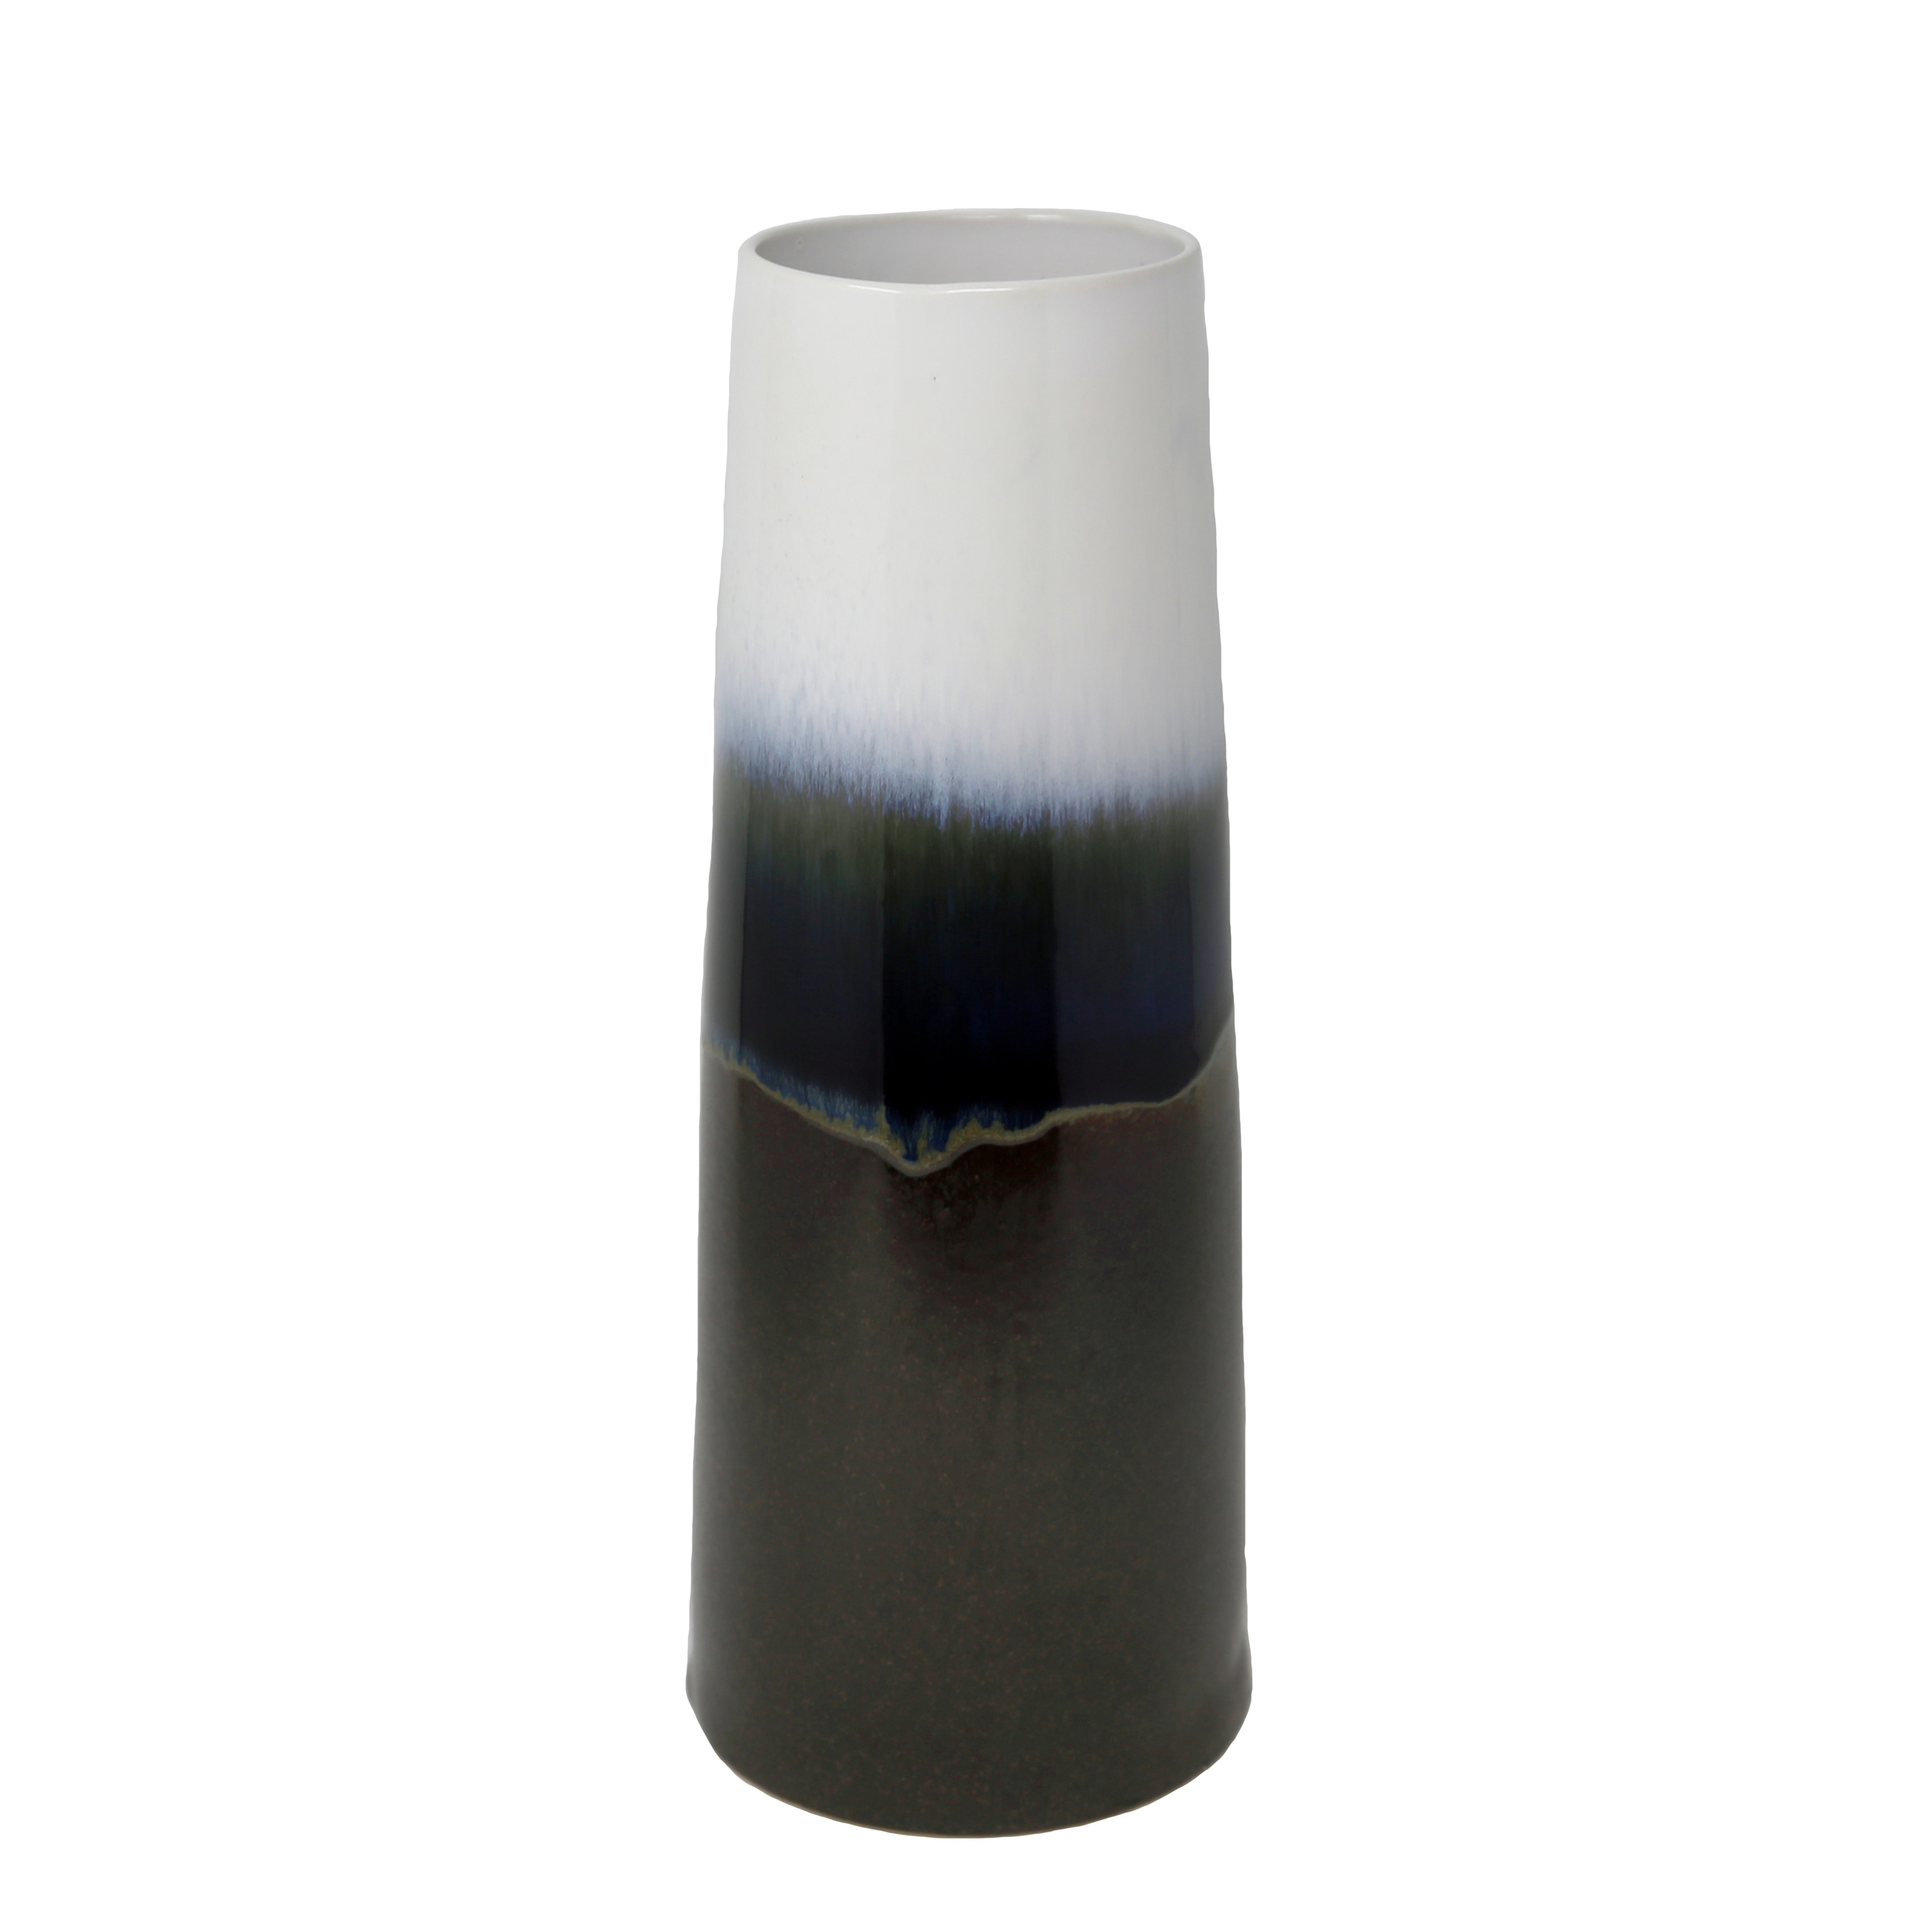 Ceramic Multi Layered Vase with Round Open Mouth and Flat Bottom, Multicolor